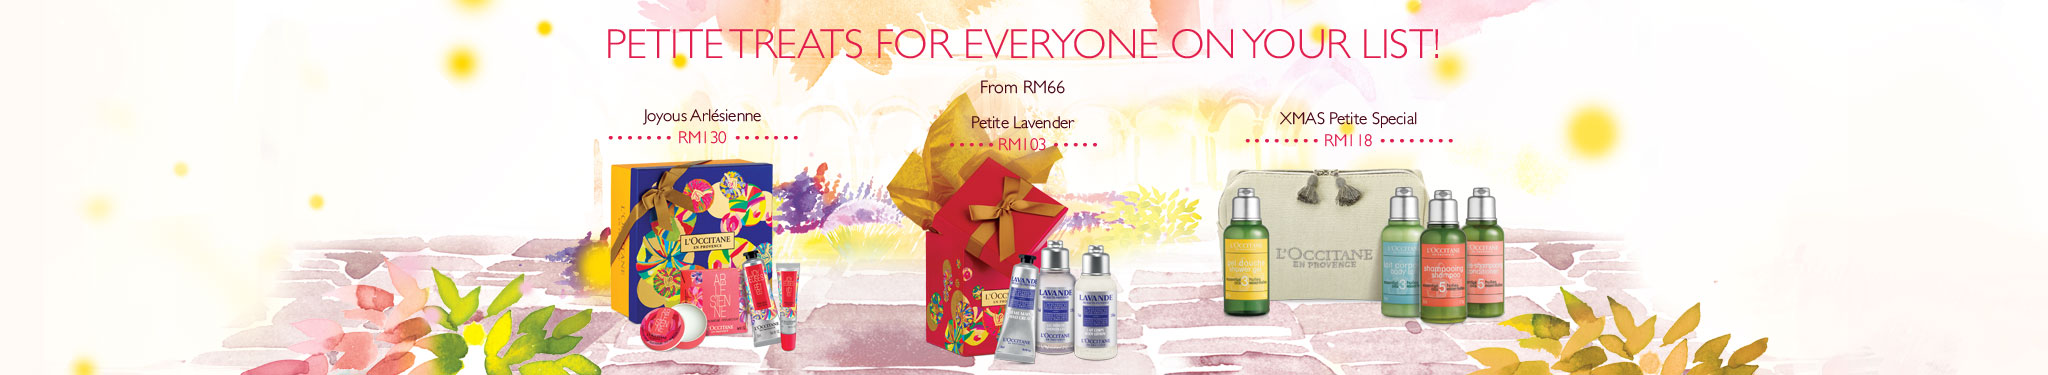 Petite Treats for Everyone on Your List!